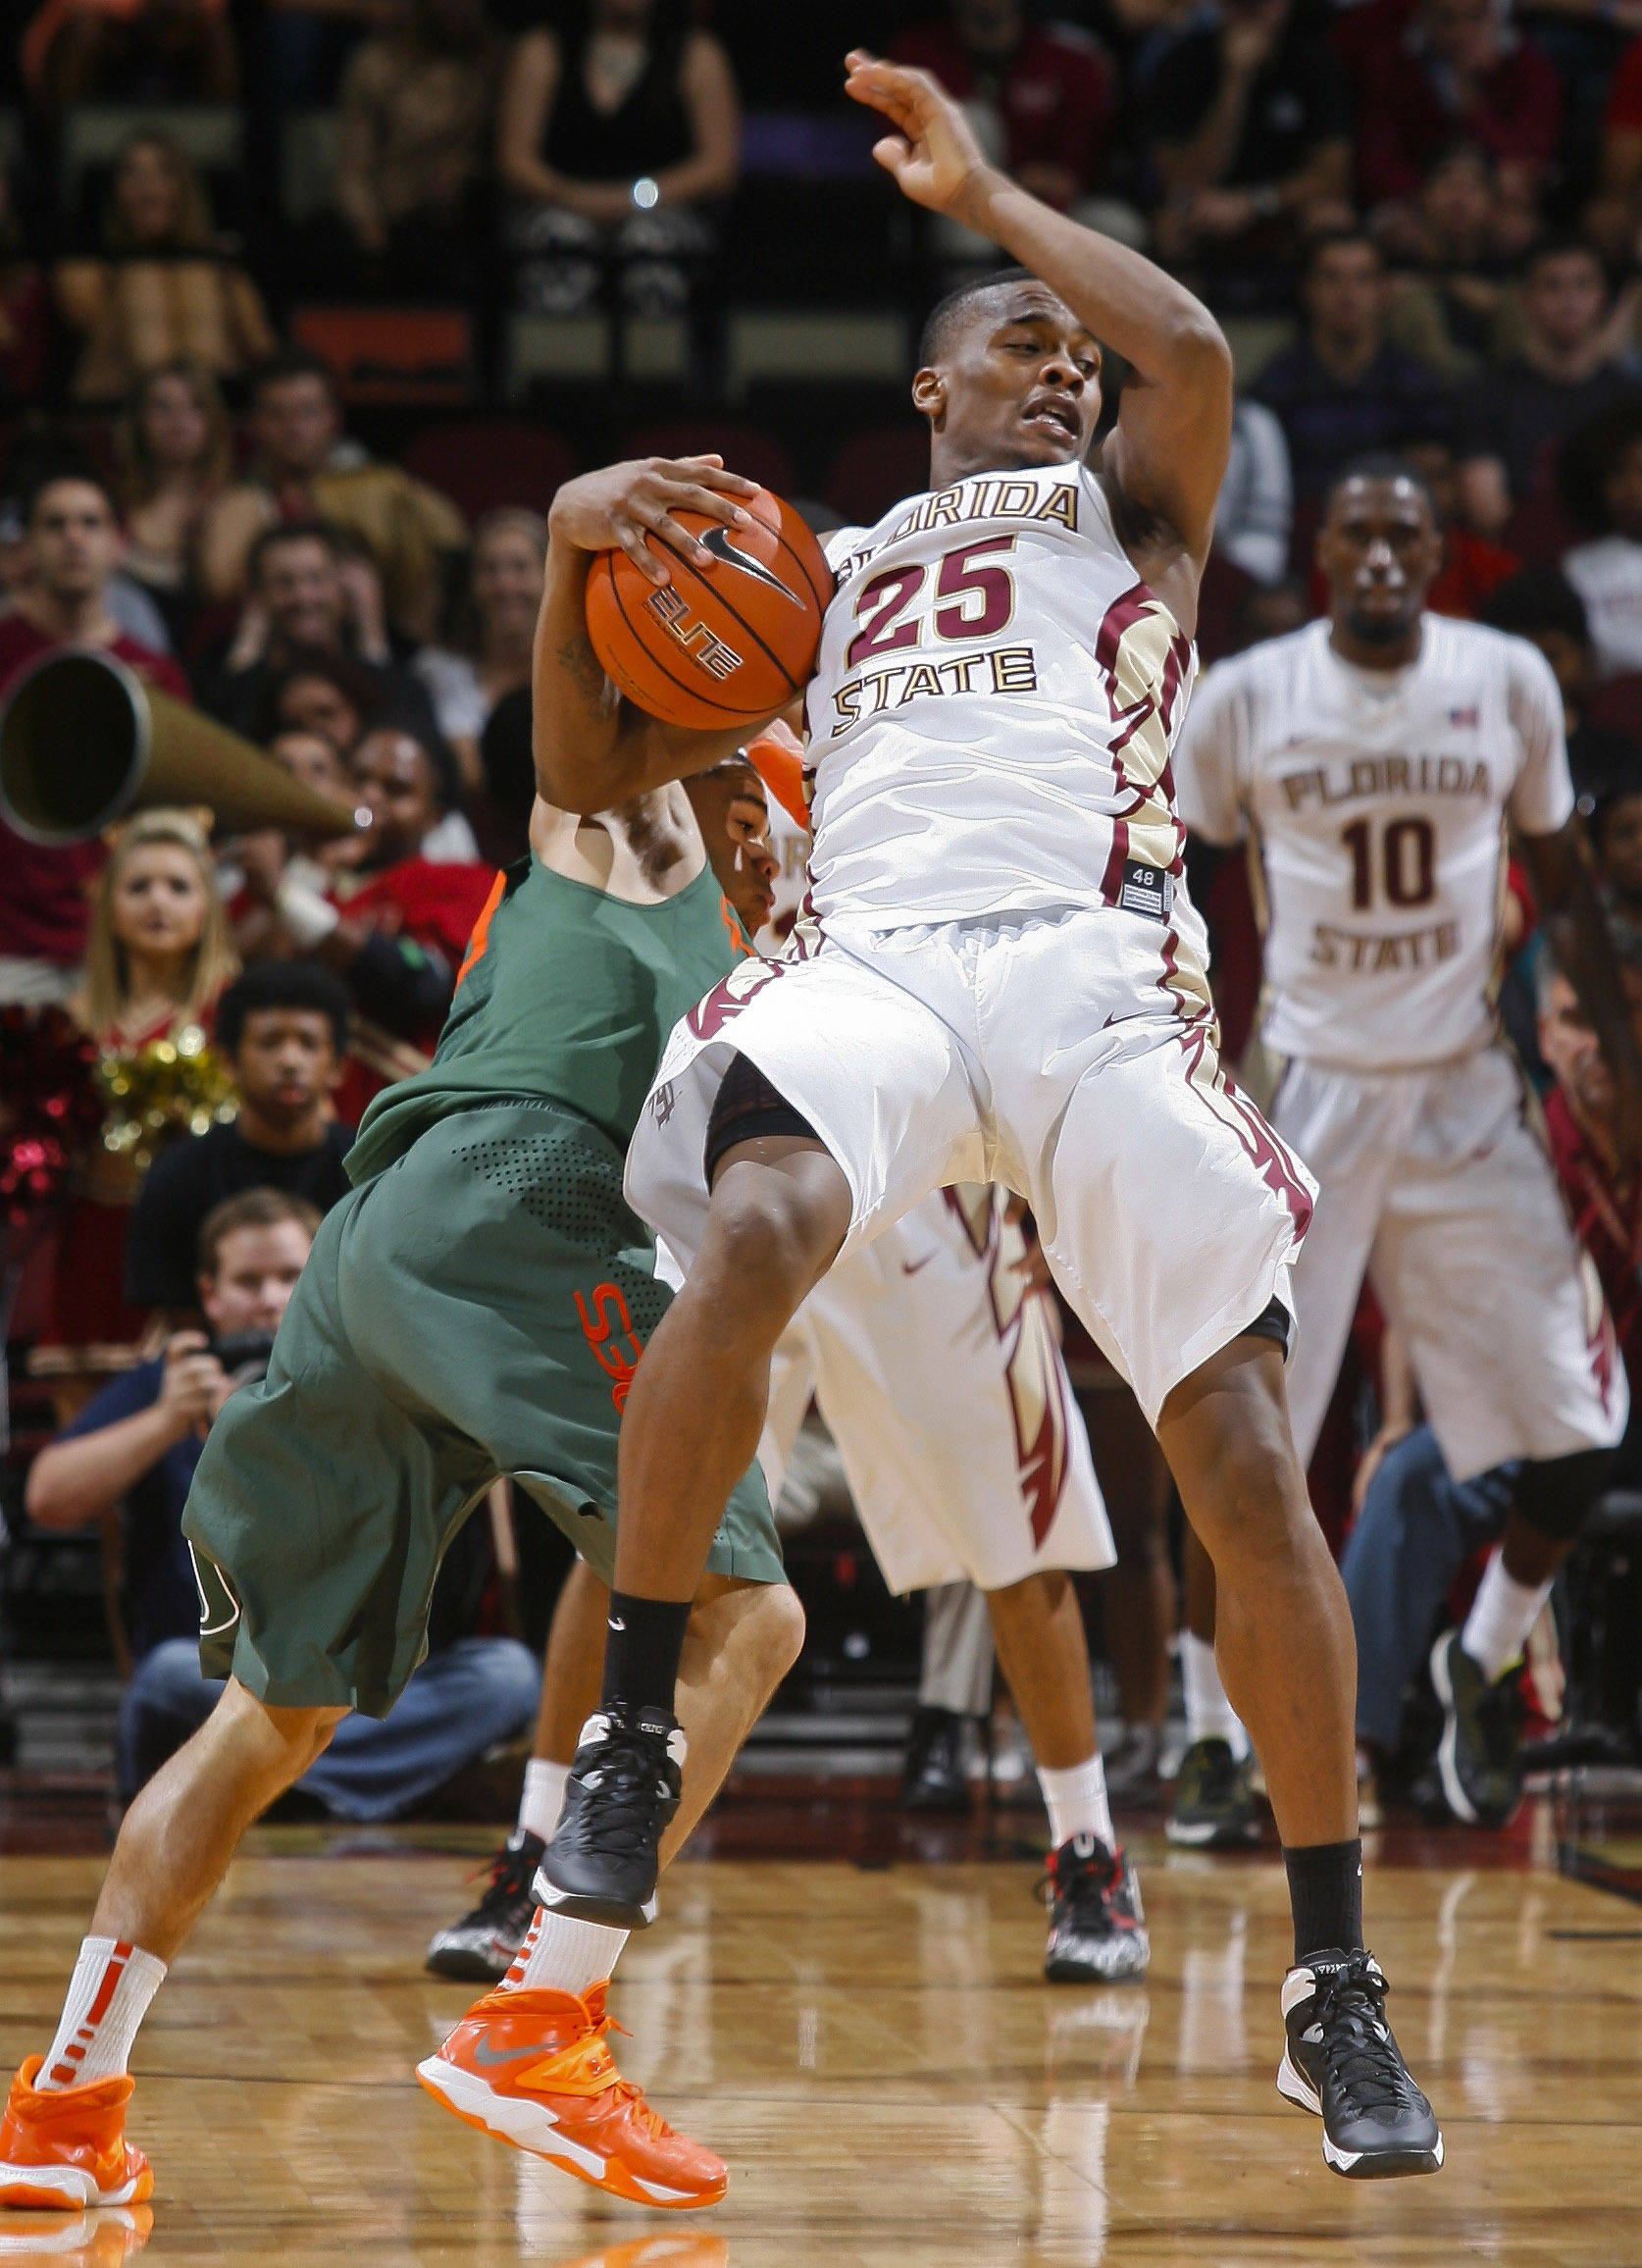 Feb 10, 2014; Tallahassee, FL, USA; Miami Hurricanes guard Manu Lecomte (20) fouls Seminoles guard Aaron Thomas (25) as they collide in the second half. Phil Sears-USA TODAY Sports